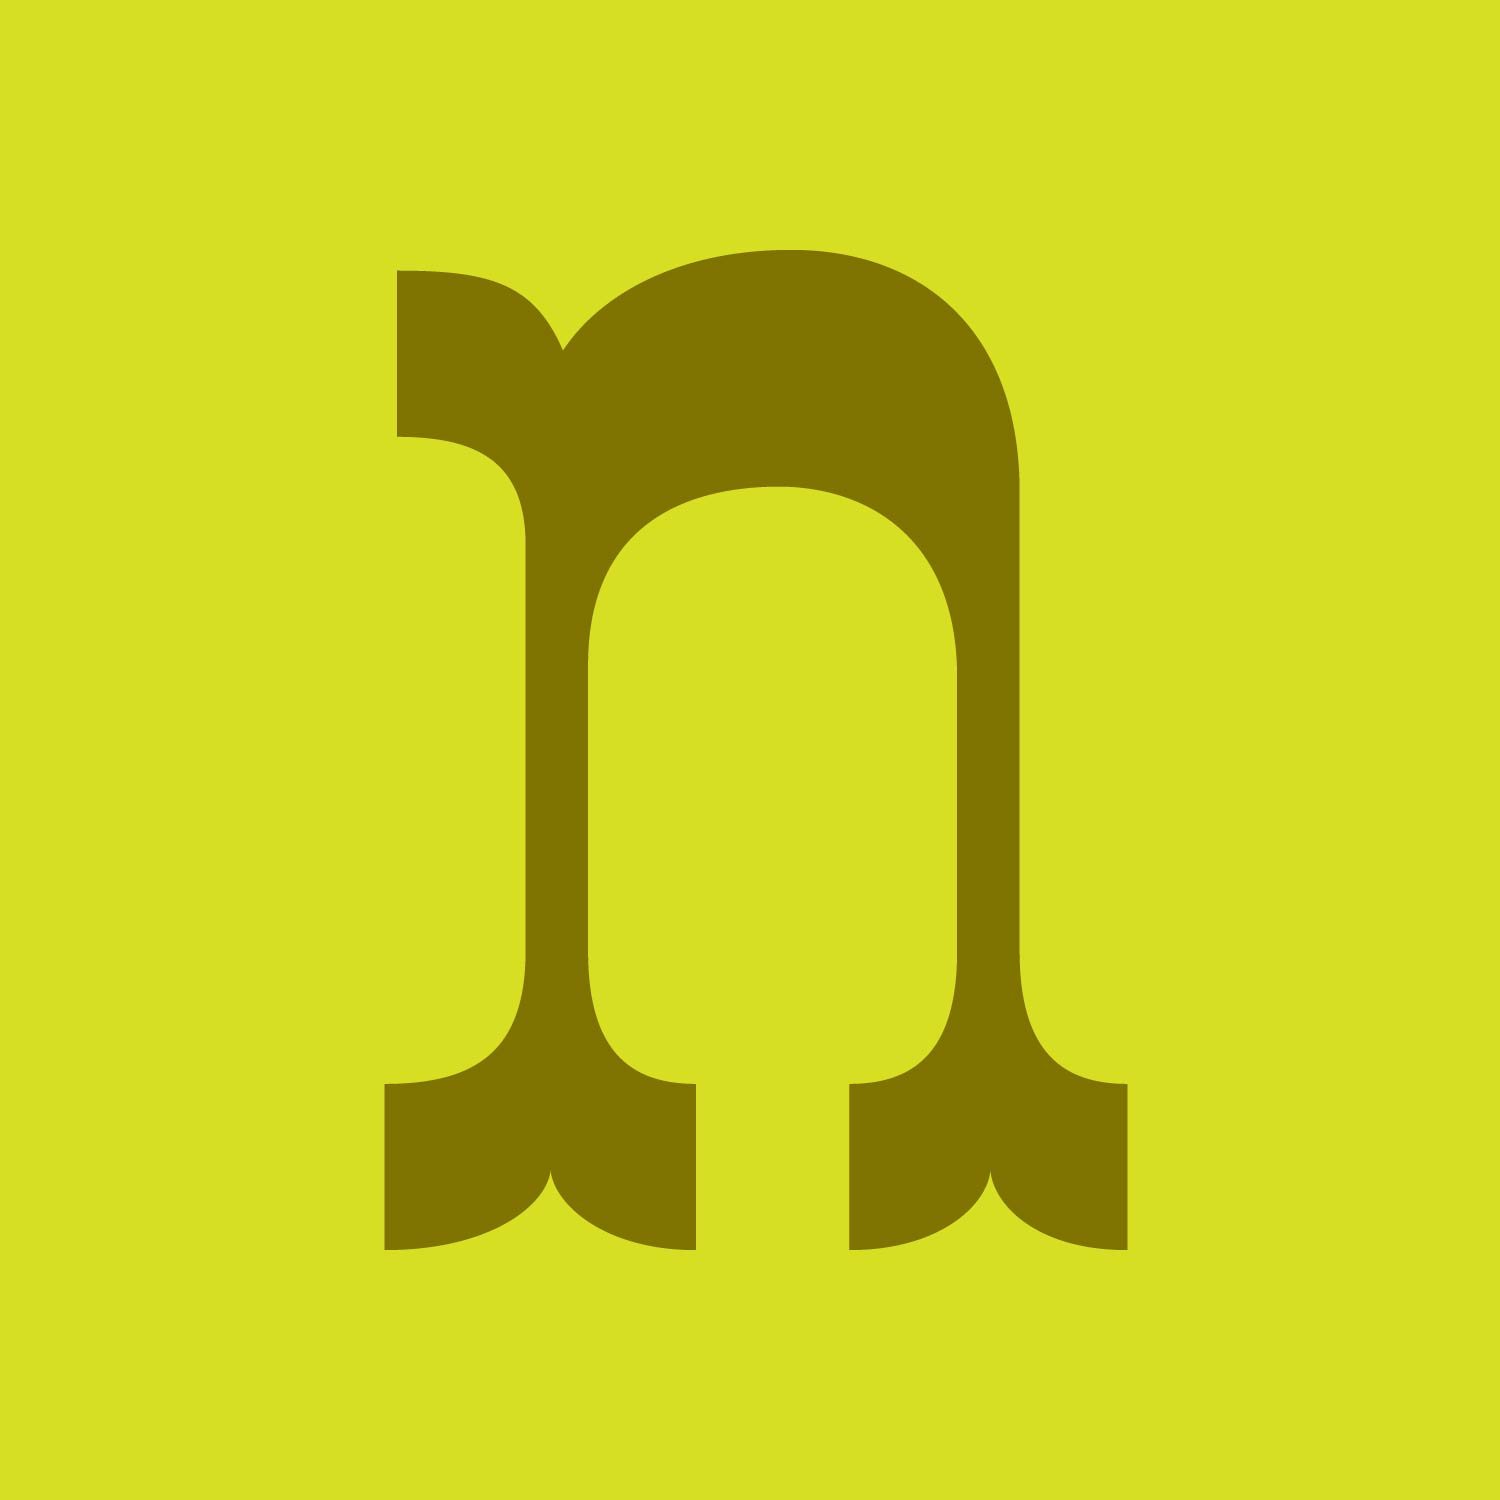 condensed reverse contrast tuscan letter n in olive green on a lime green background